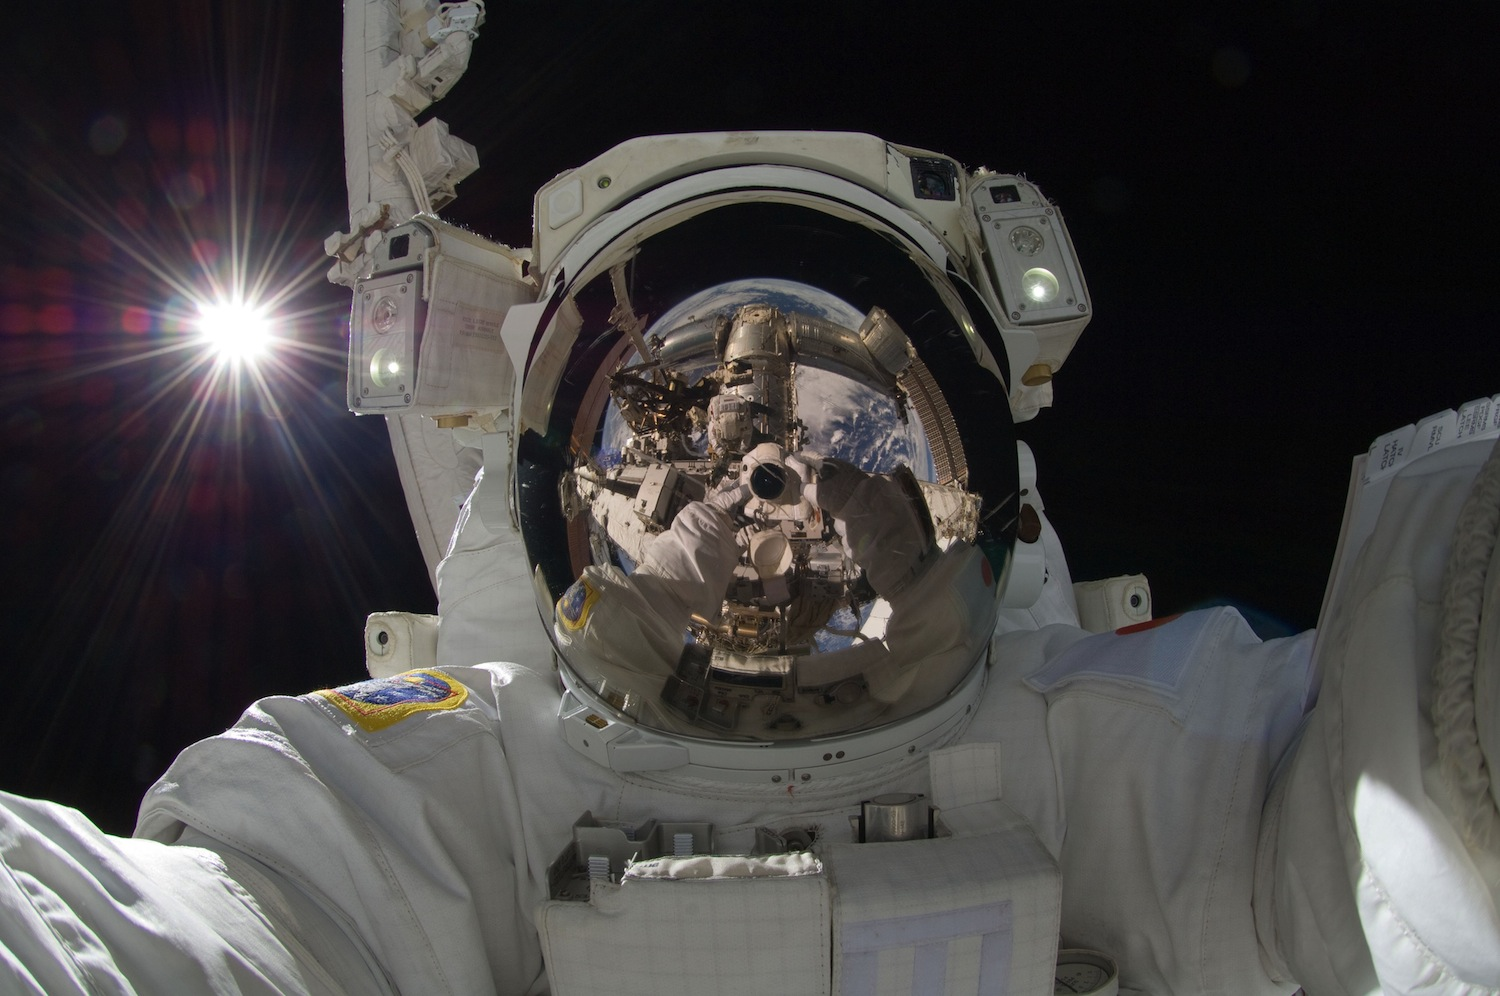 Sensors, like those in this space suit, will one day include brain and behavioral measures. Image by NASA.